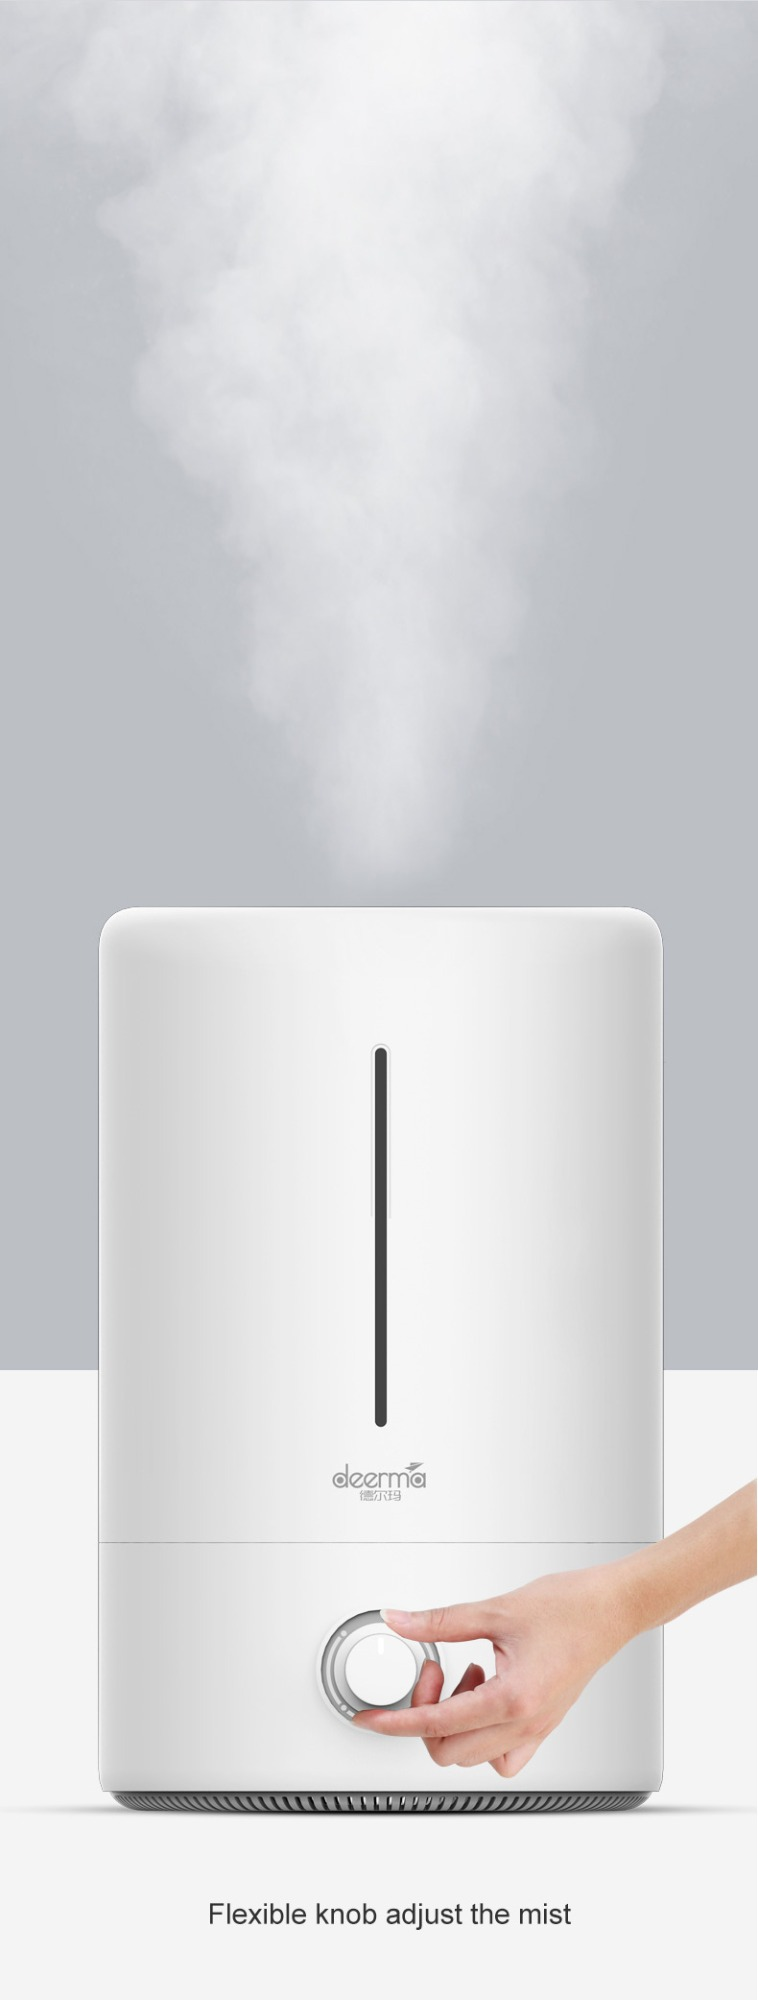 2019 xiaomi deerma 5l household air humidifier